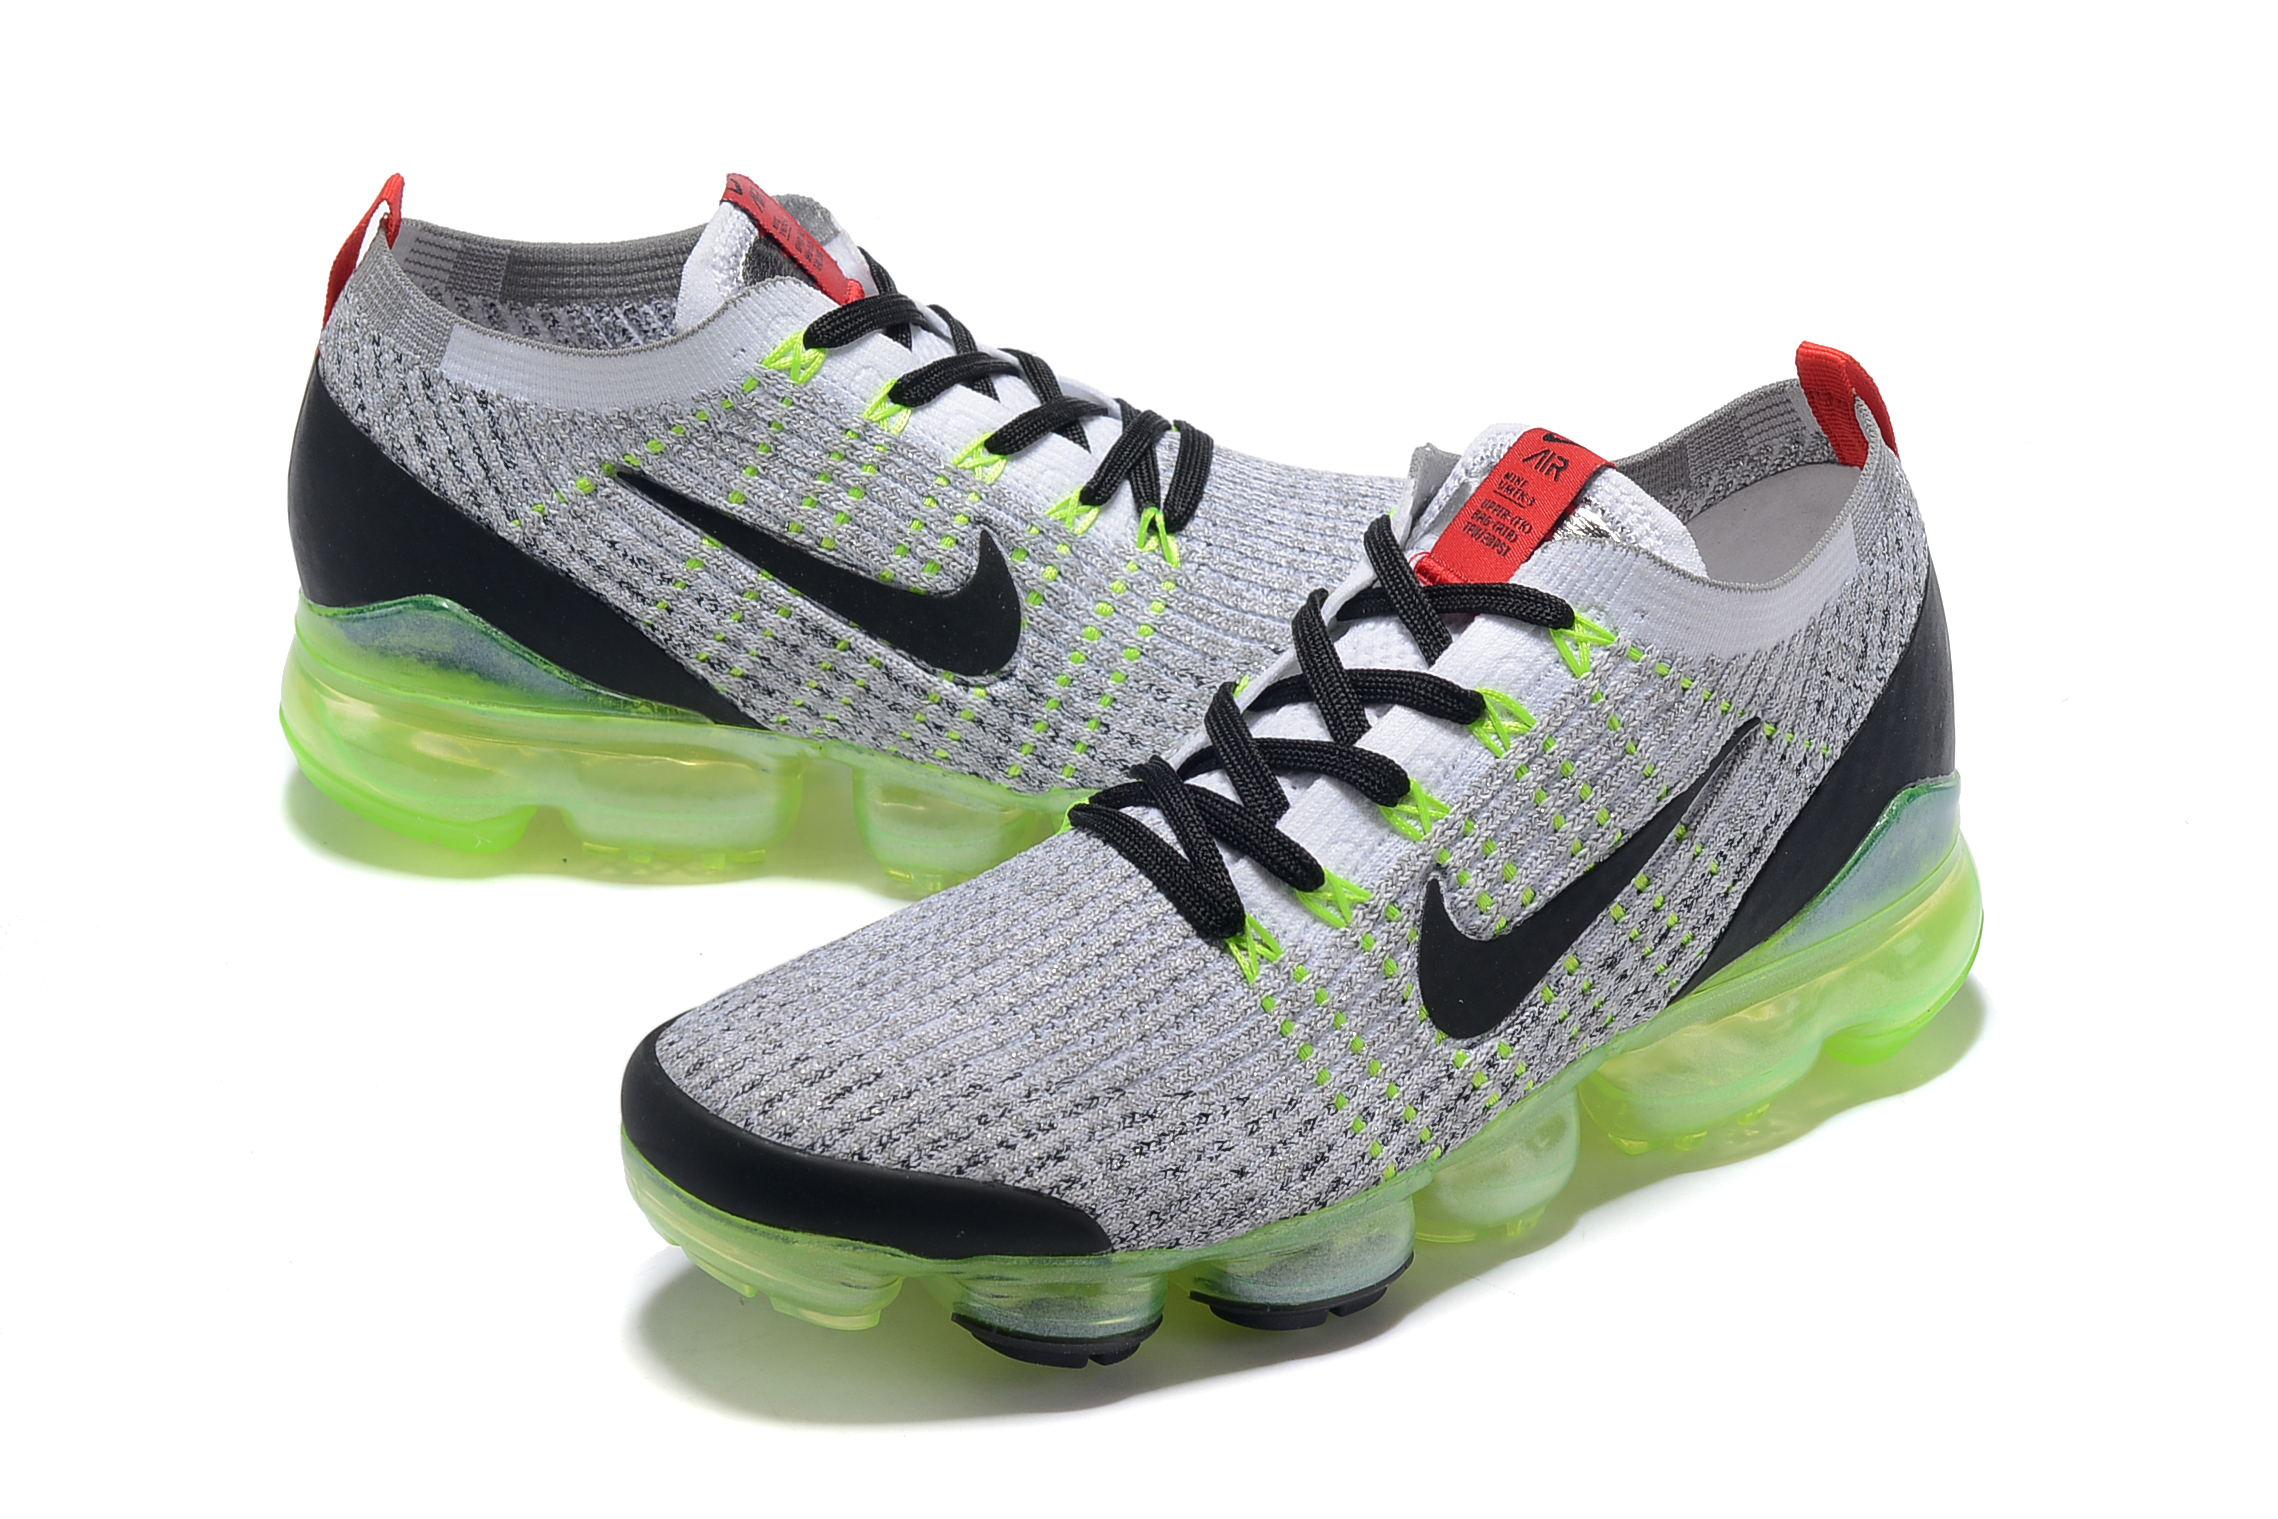 Nike Air VaporMax 2019 Flyknit Grey Green Black Shoes